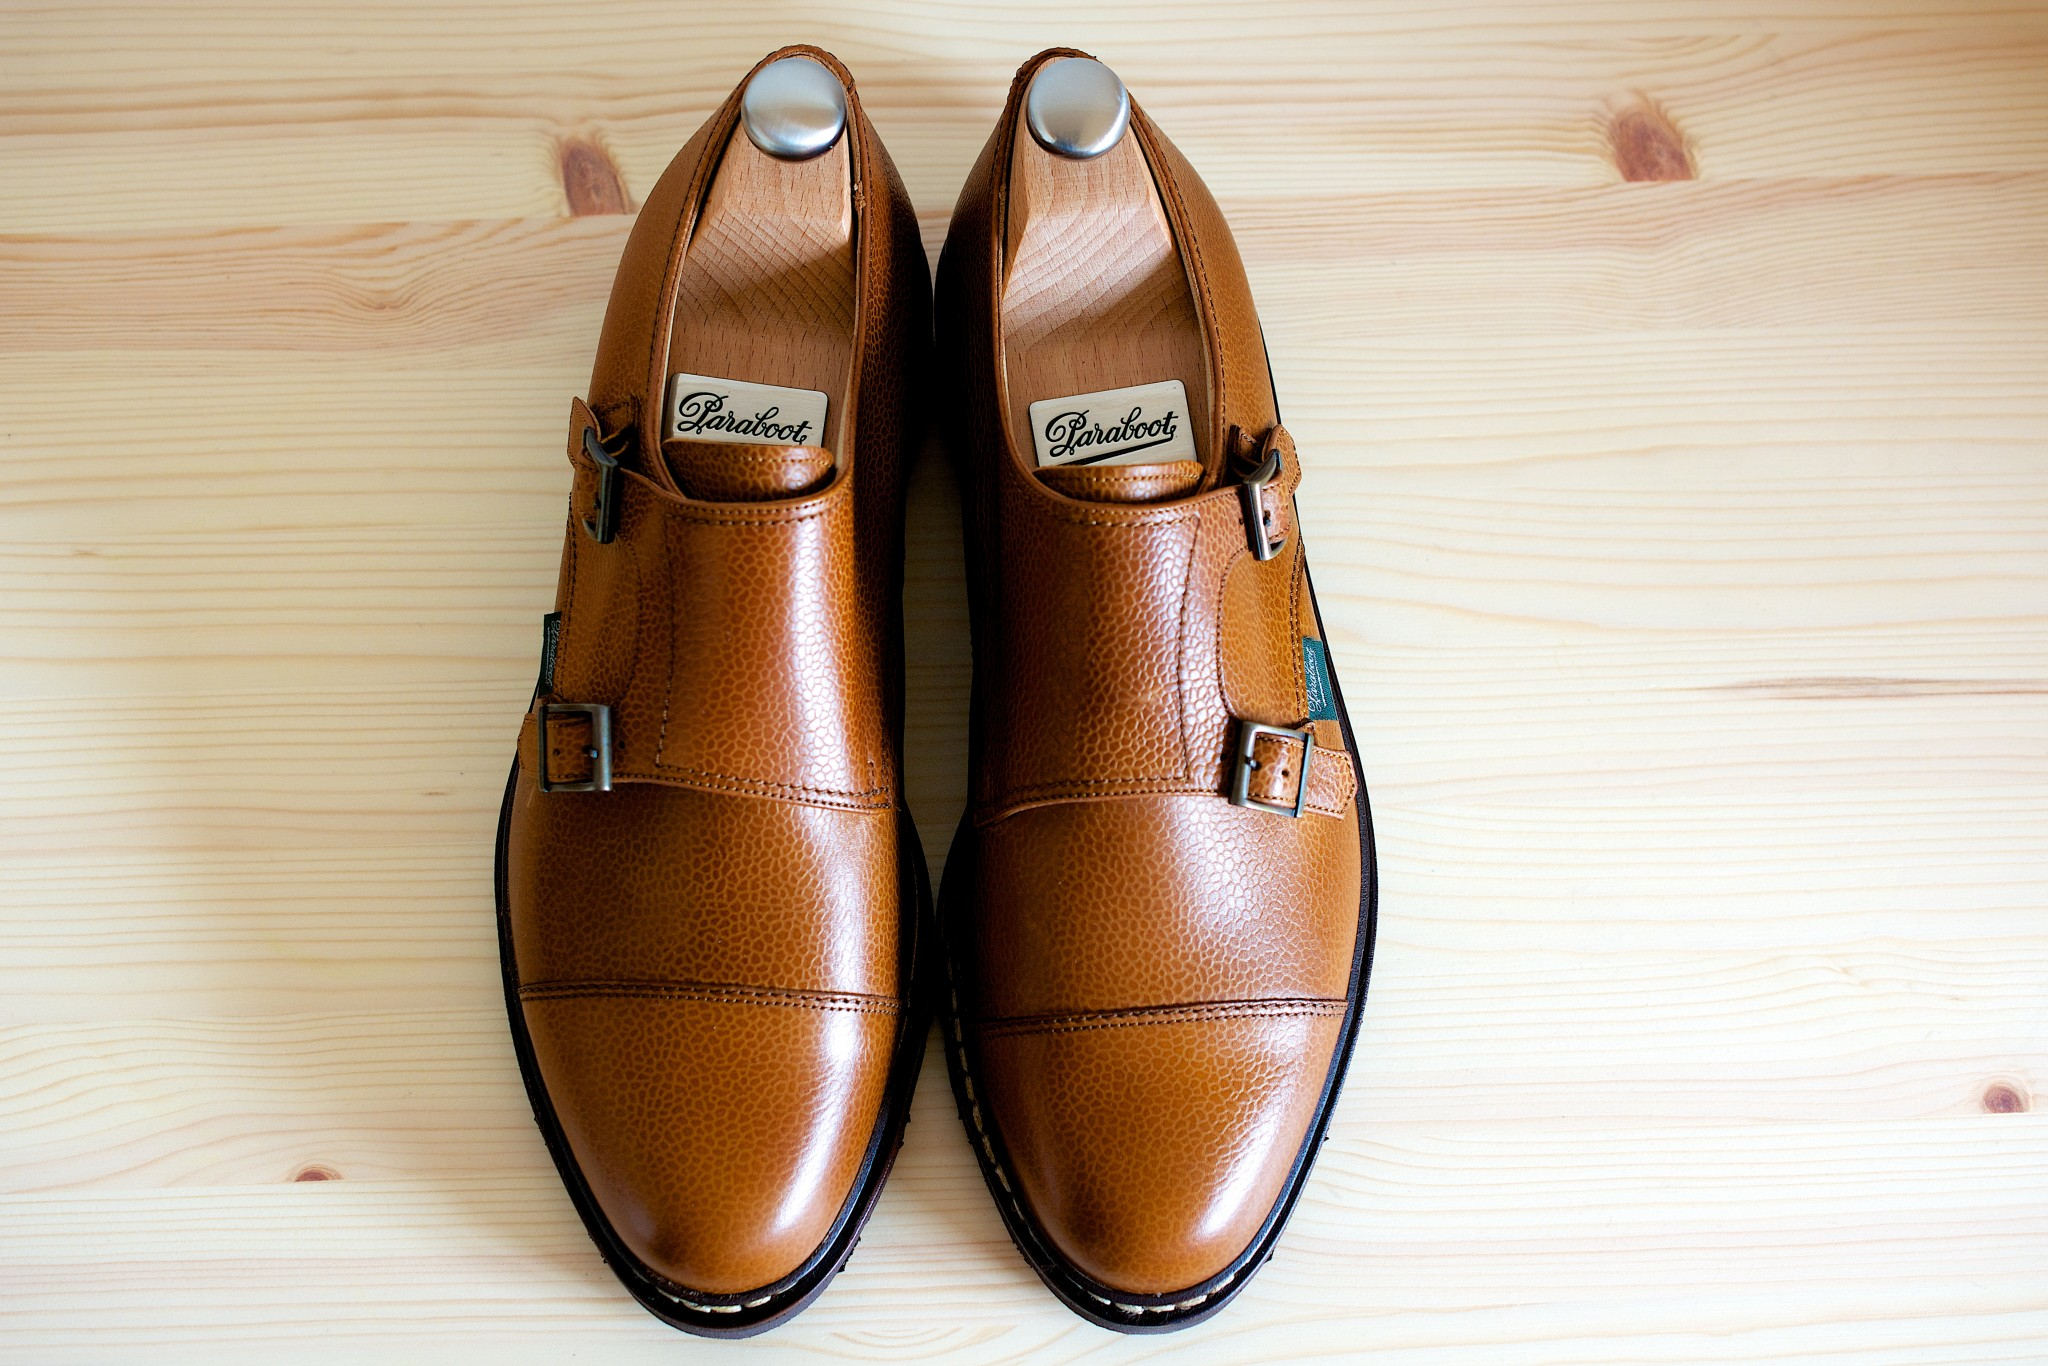 [Paraboot WILLIAM GrainCognac]